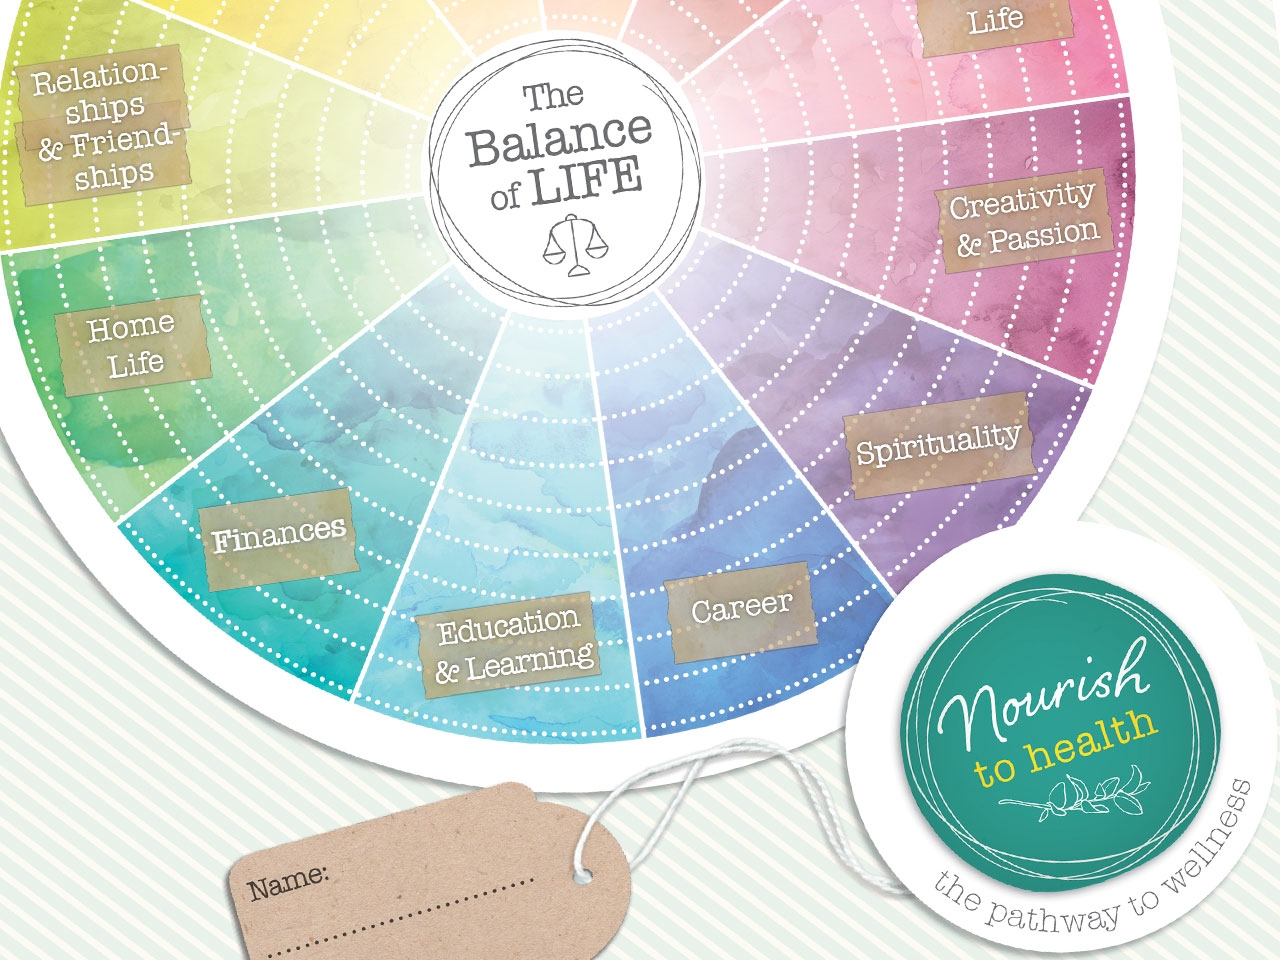 NOURISH TO HEALTH - Branding, Stationery, Social Media and 'The Balance of Life Wheel' design.